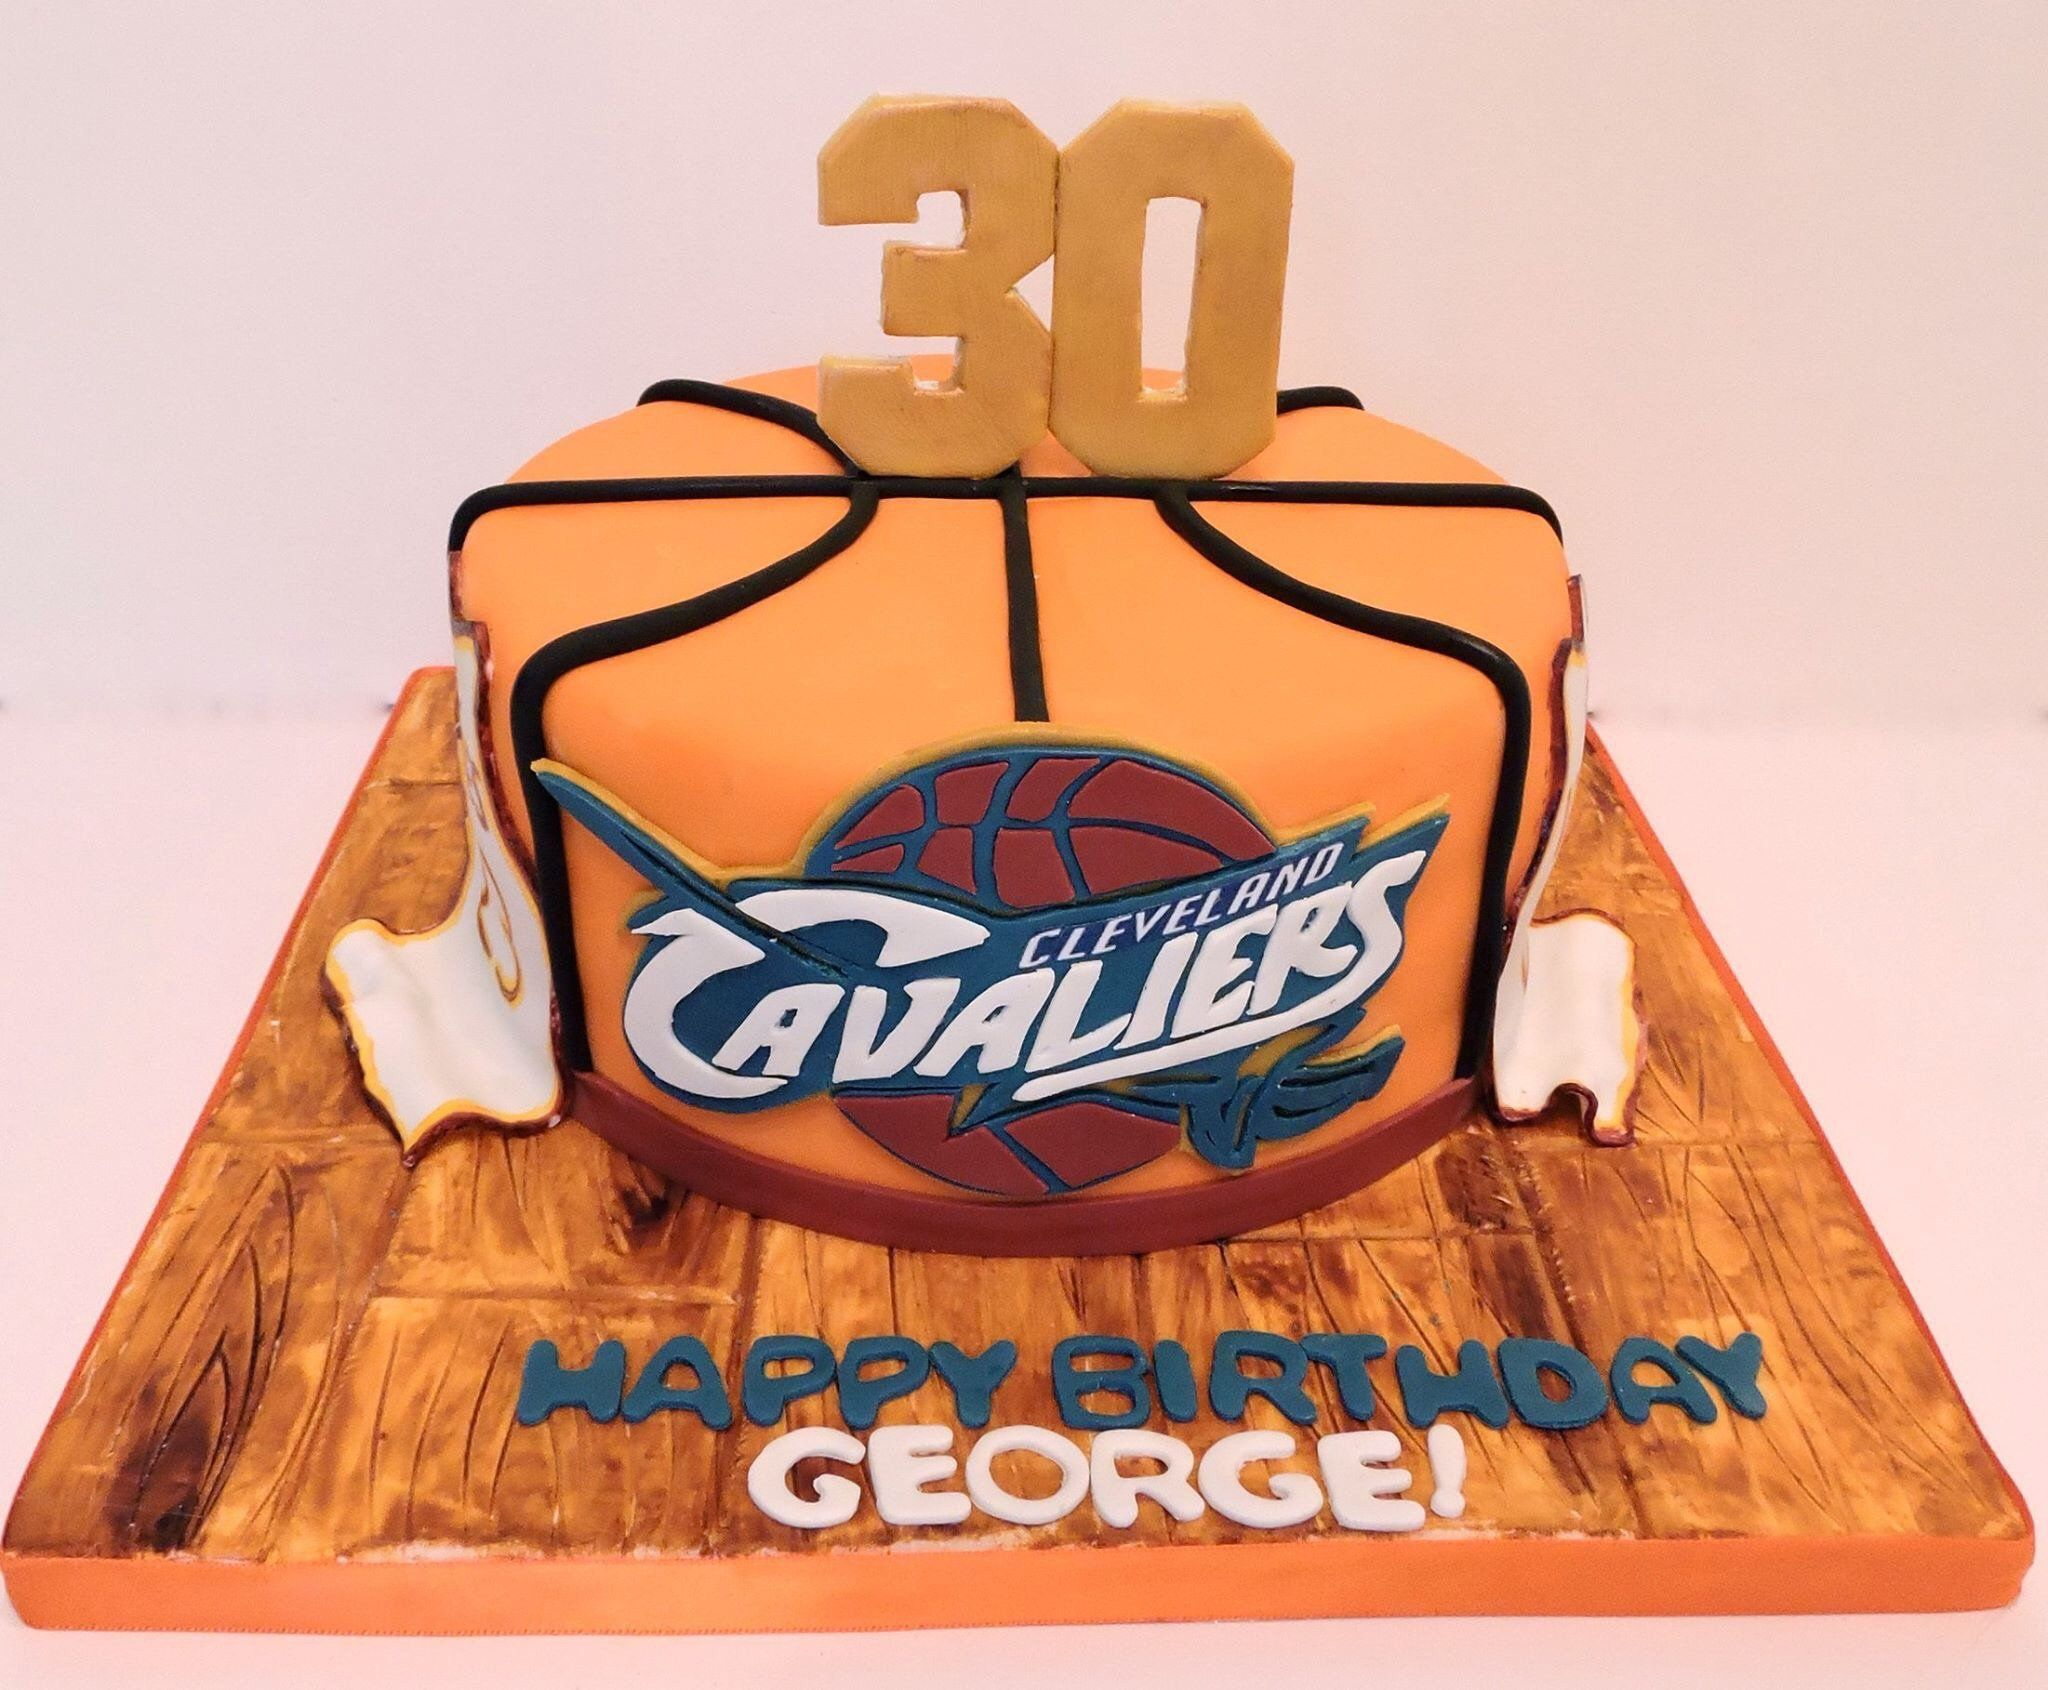 Cleveland Cavaliers Basketball Cake For Mans 30Th Birthday | 6th ...